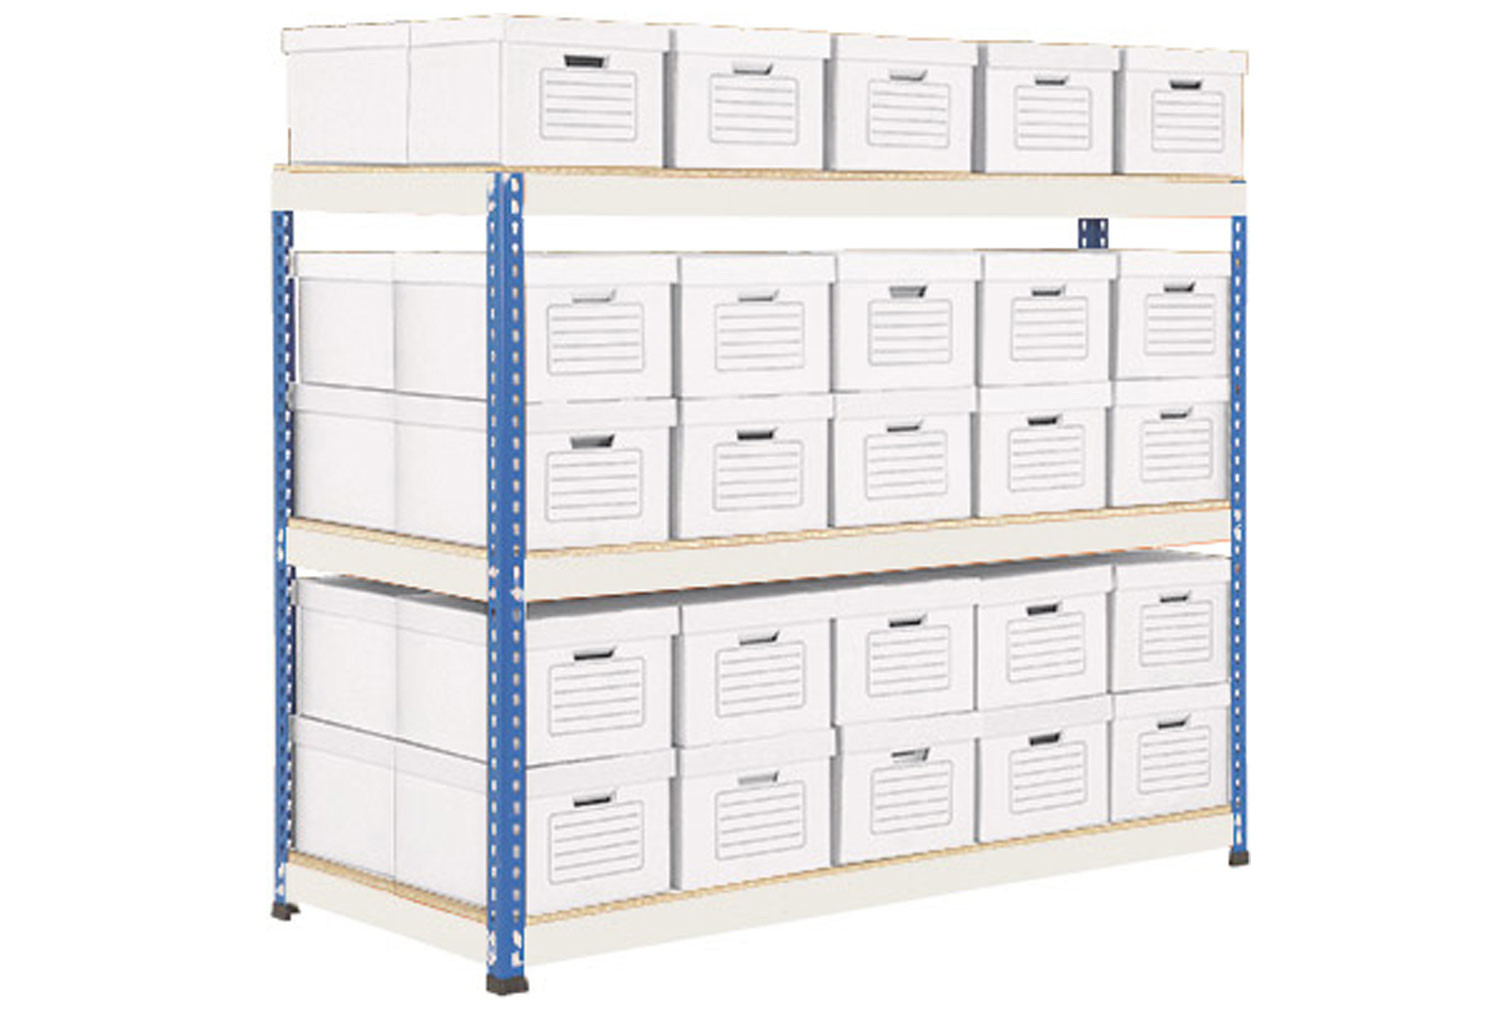 Rapid 1 double sided archive storage unit with 50 boxes (blue/grey)